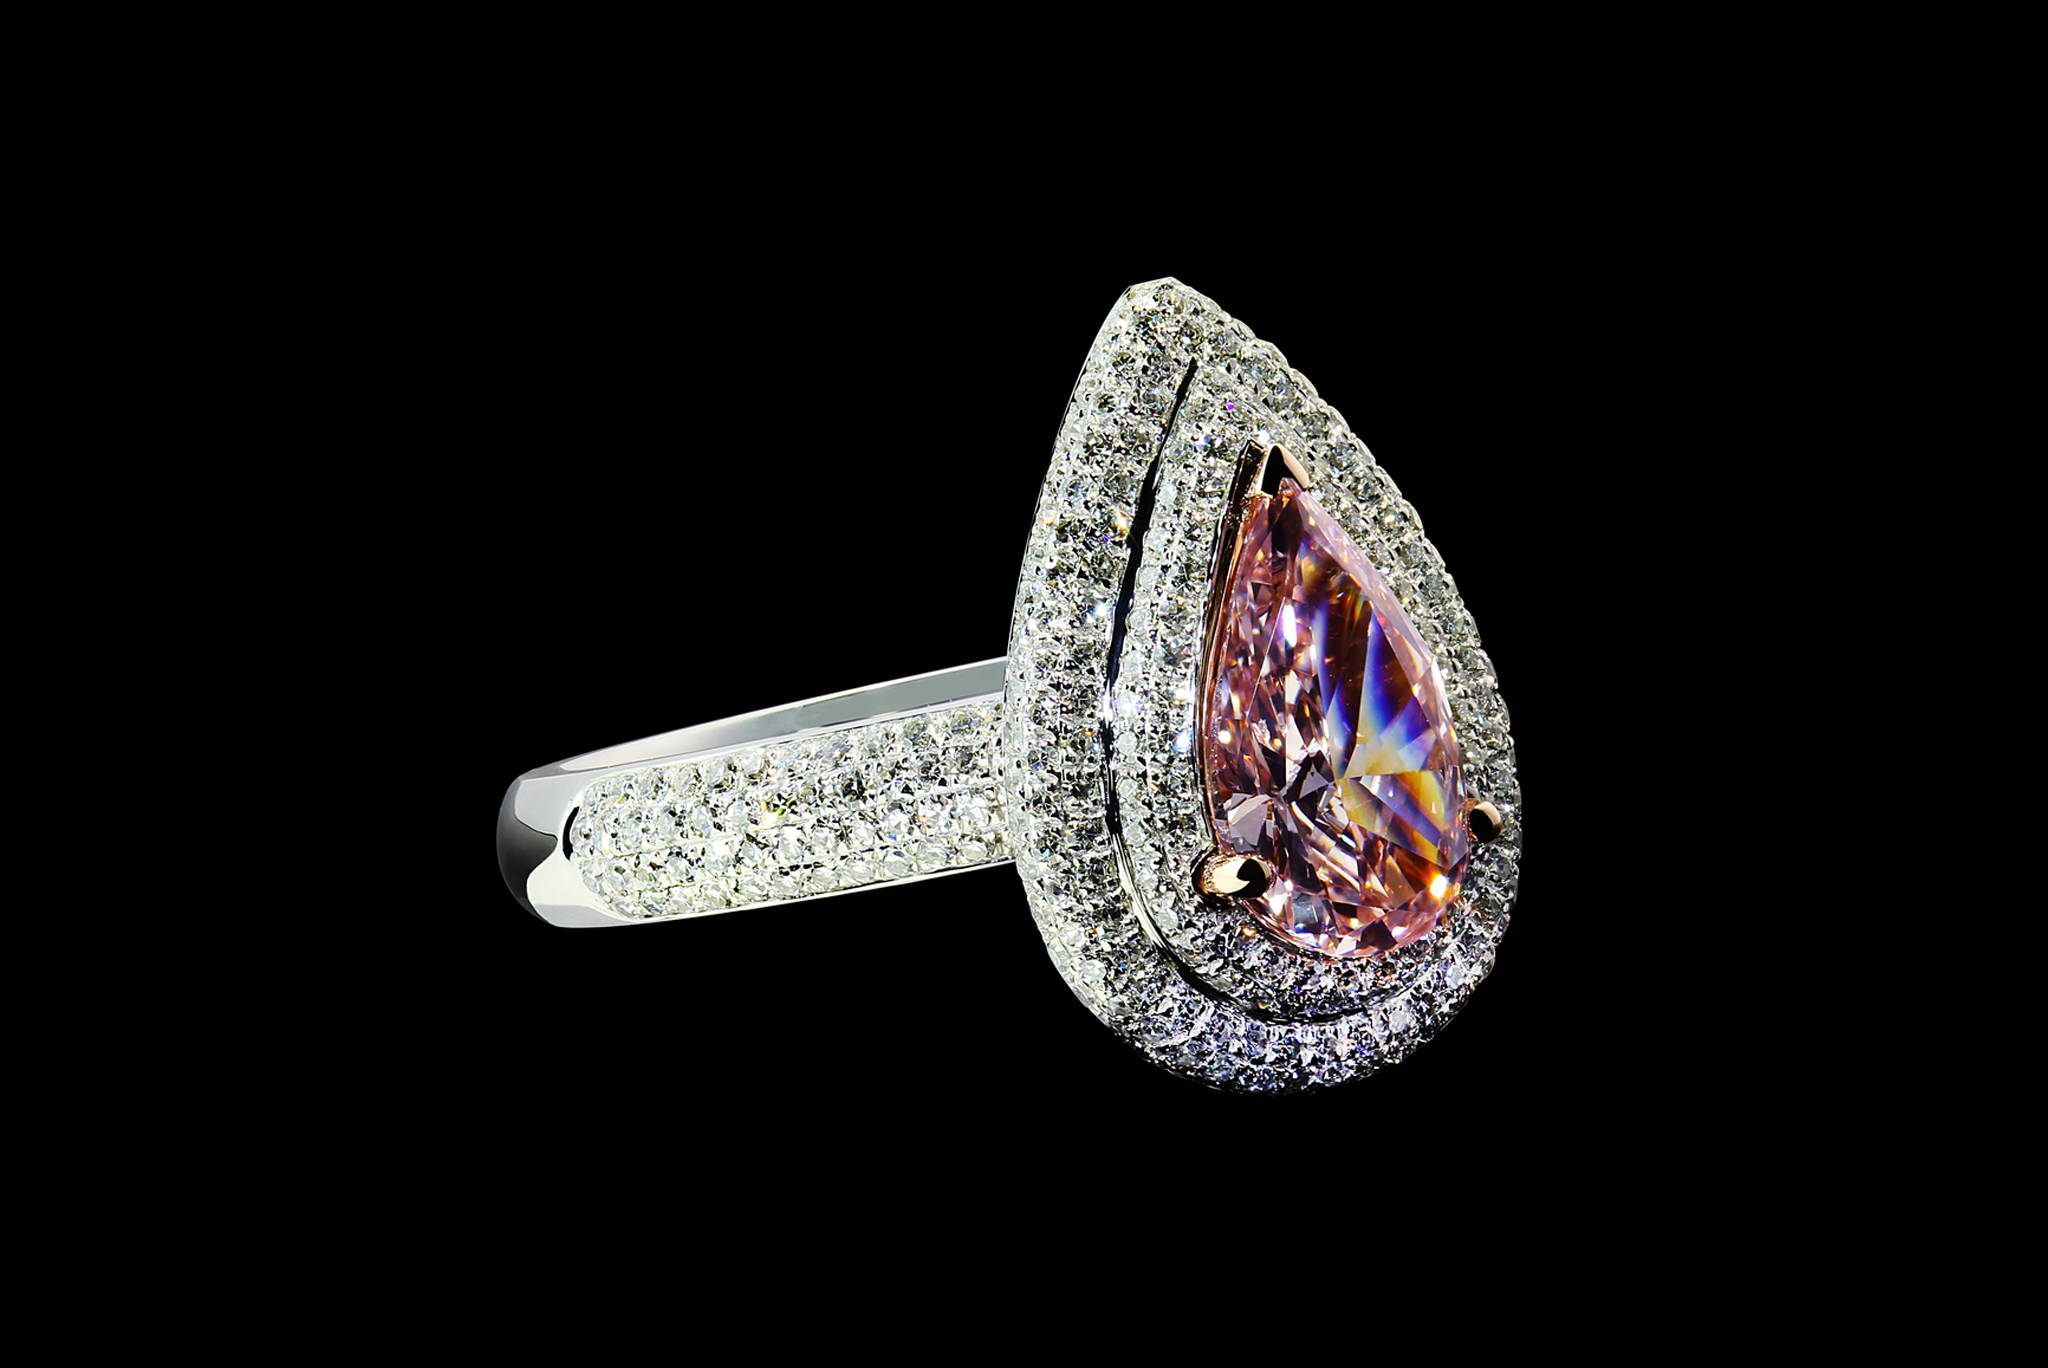 Vintage Style Pink Diamond Ring front view